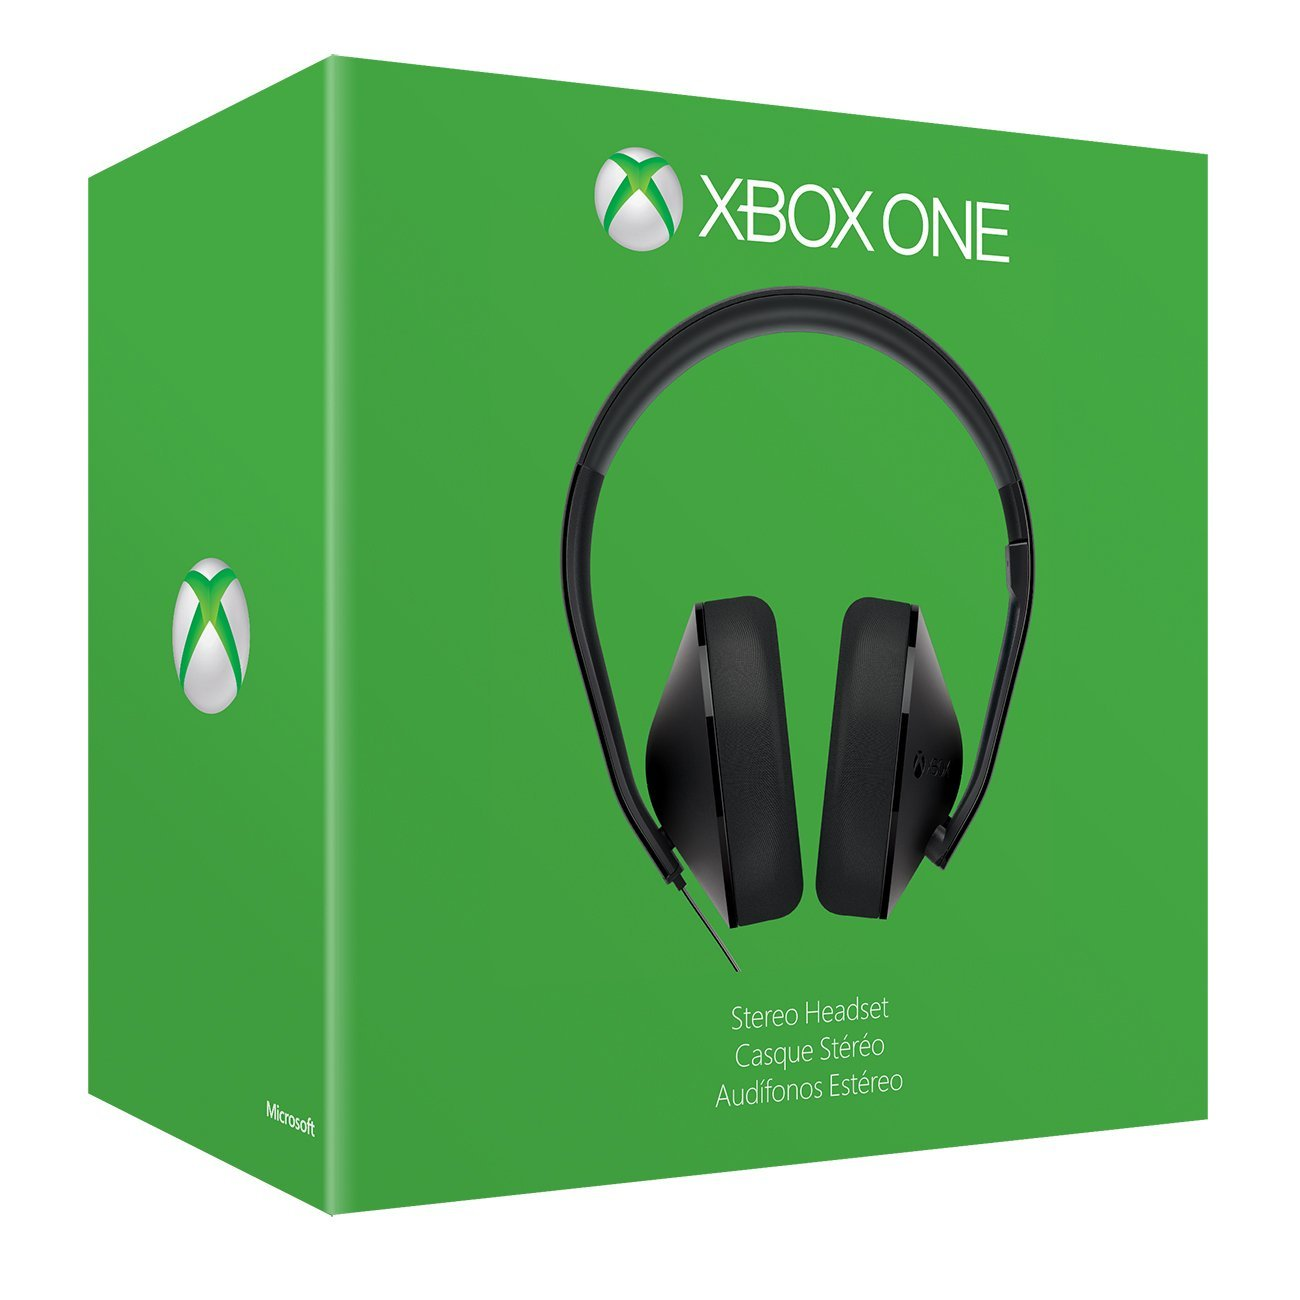 Xbox One Stereo Headset combo just $50!